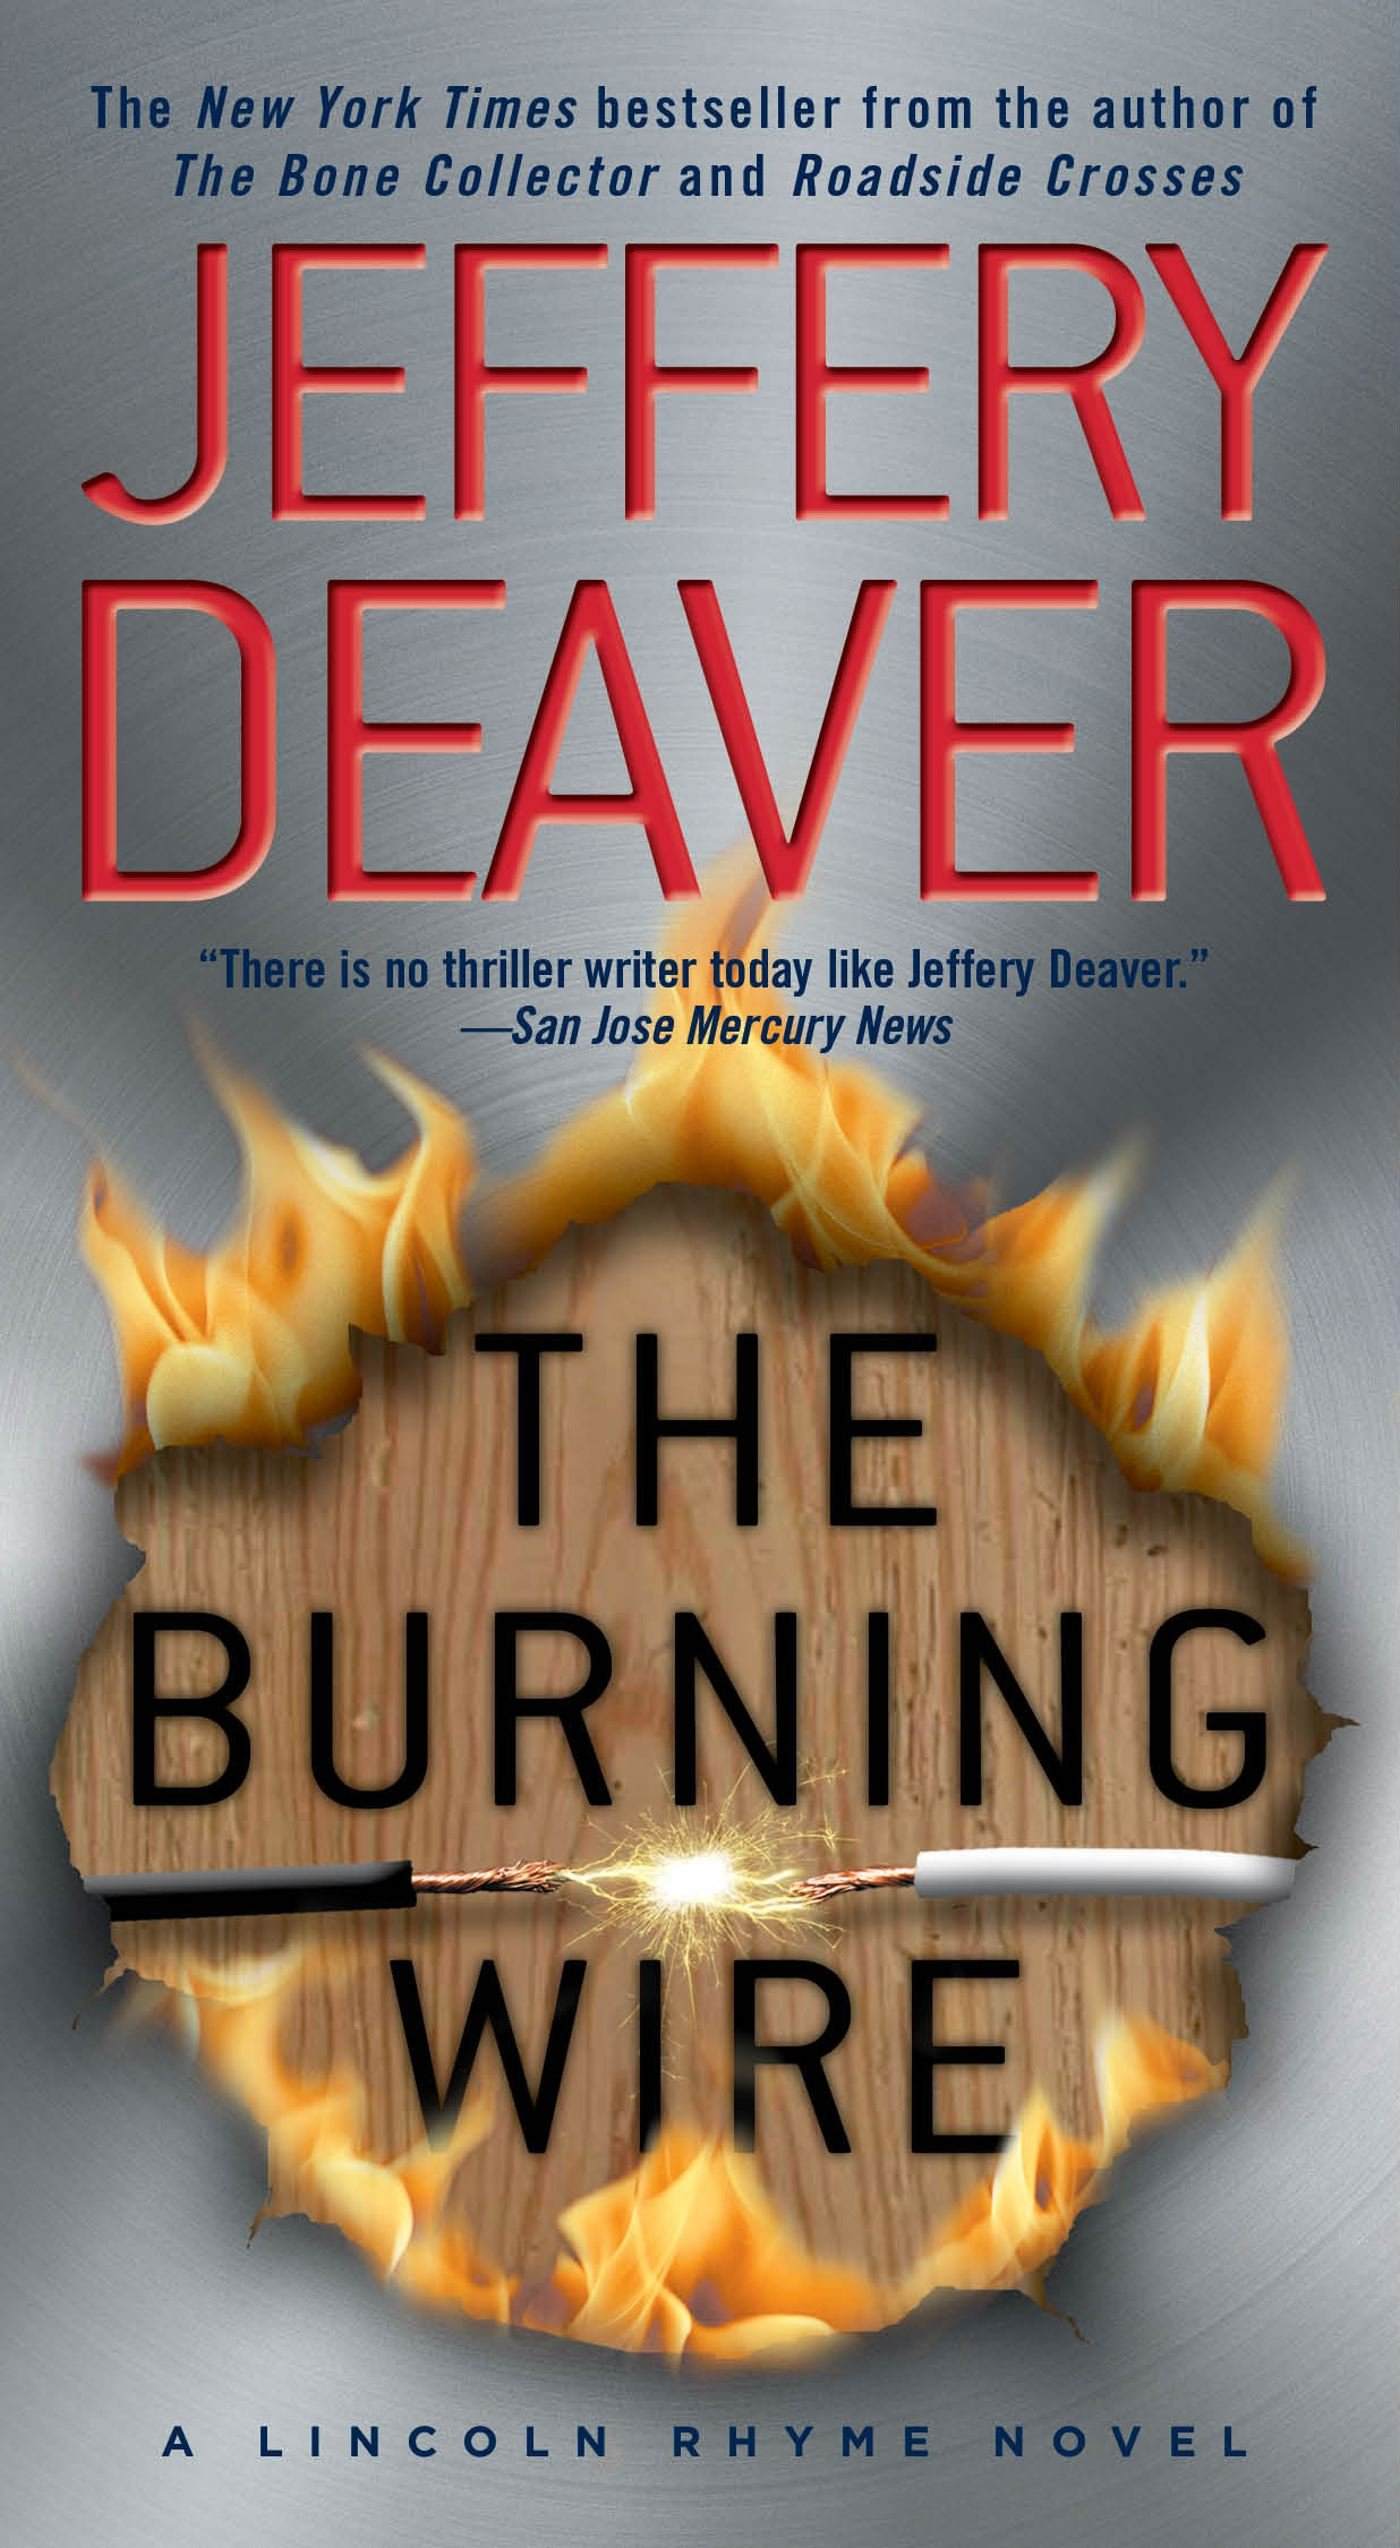 Amazon.com: The Burning Wire: A Lincoln Rhyme Novel (9781439156346 ...